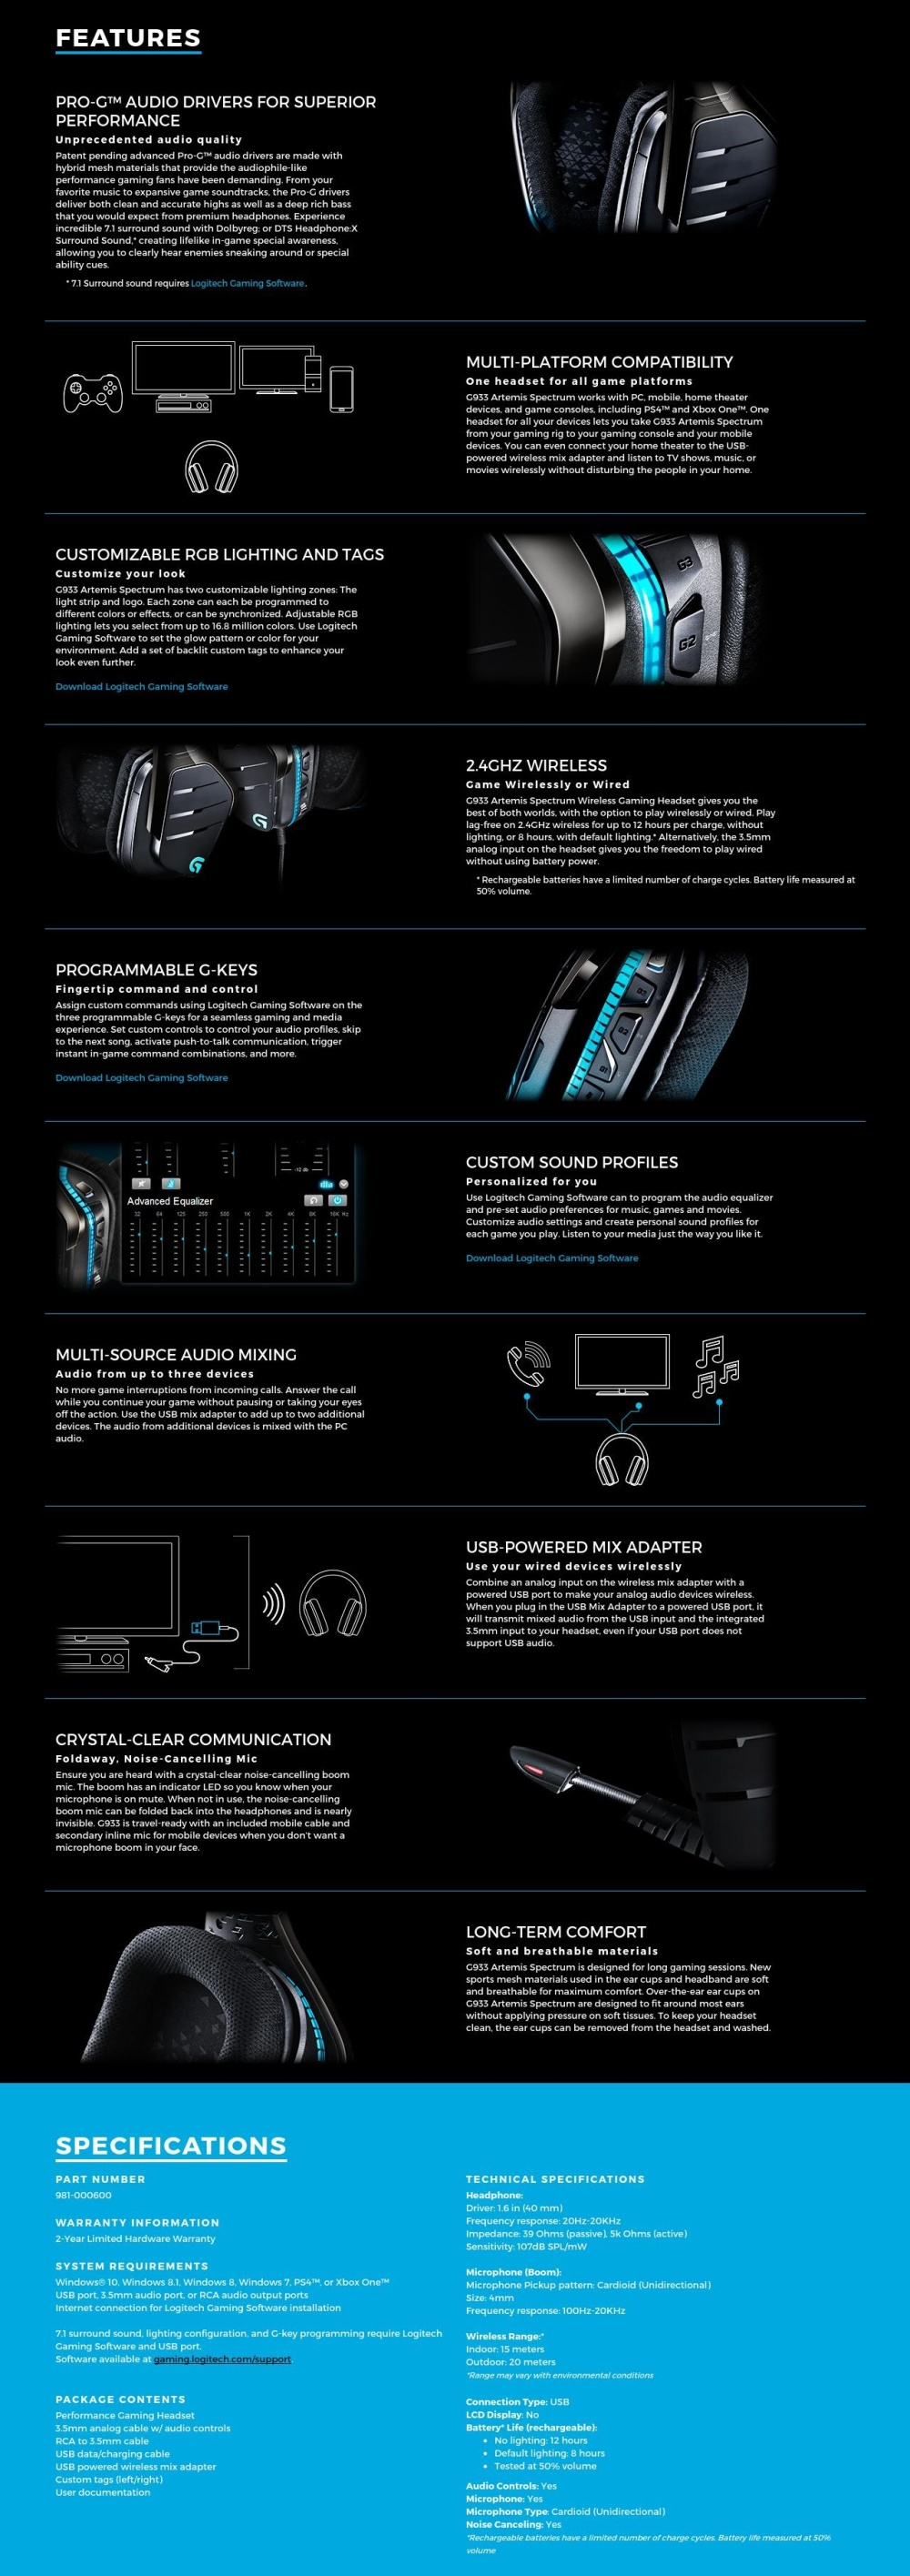 Professional Wired Gaming Headset Promotion Deep Bass Game Sades Knight Pro Bongiovi 71 Specifications Of Logitech G933 Artemis Spectrum Wireless Surround Sound Gss Promo